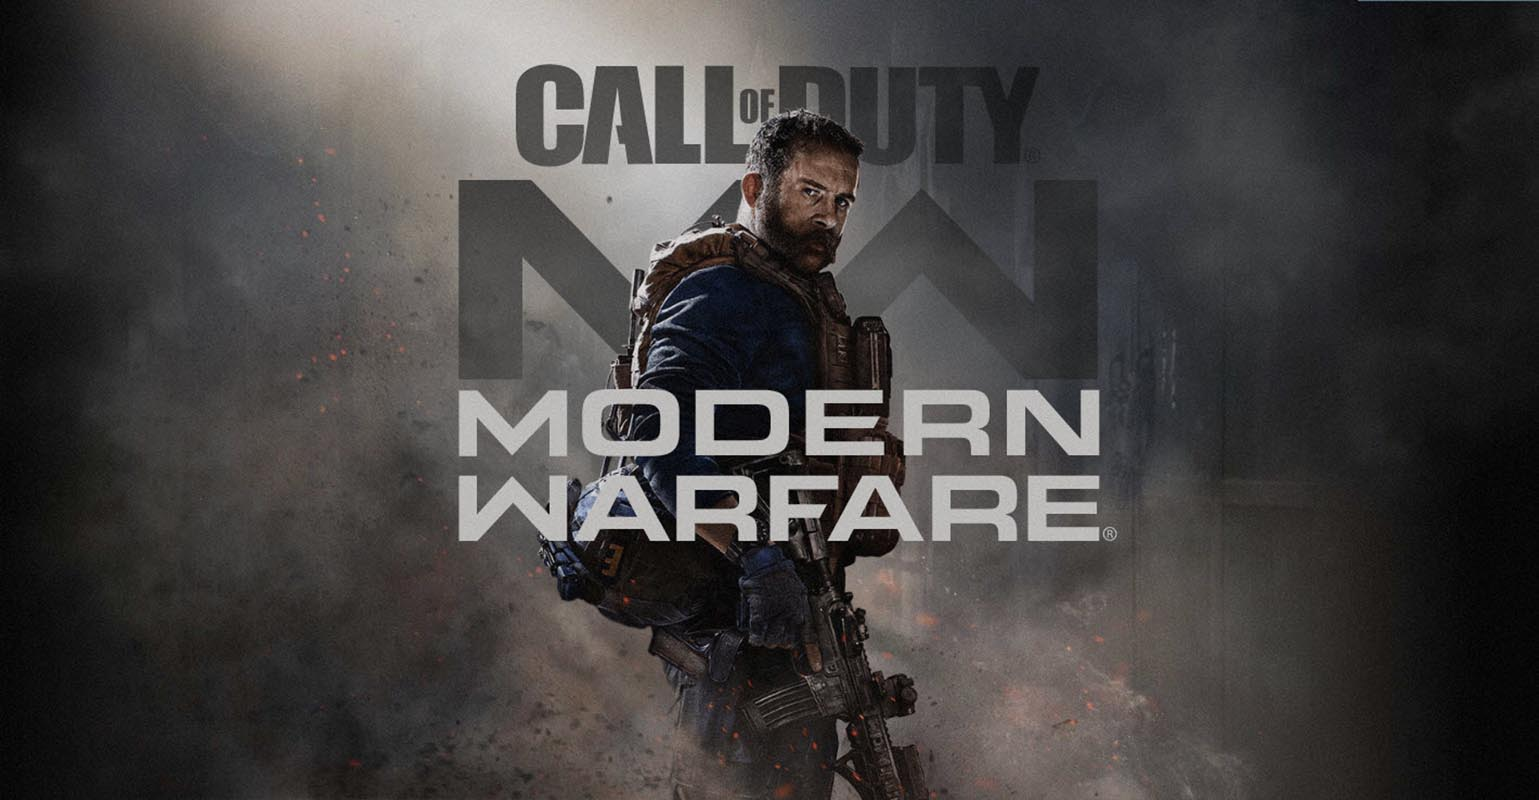 Activision wants Reddit to ID user who leaked 'Call of Duty' image - SlashGear